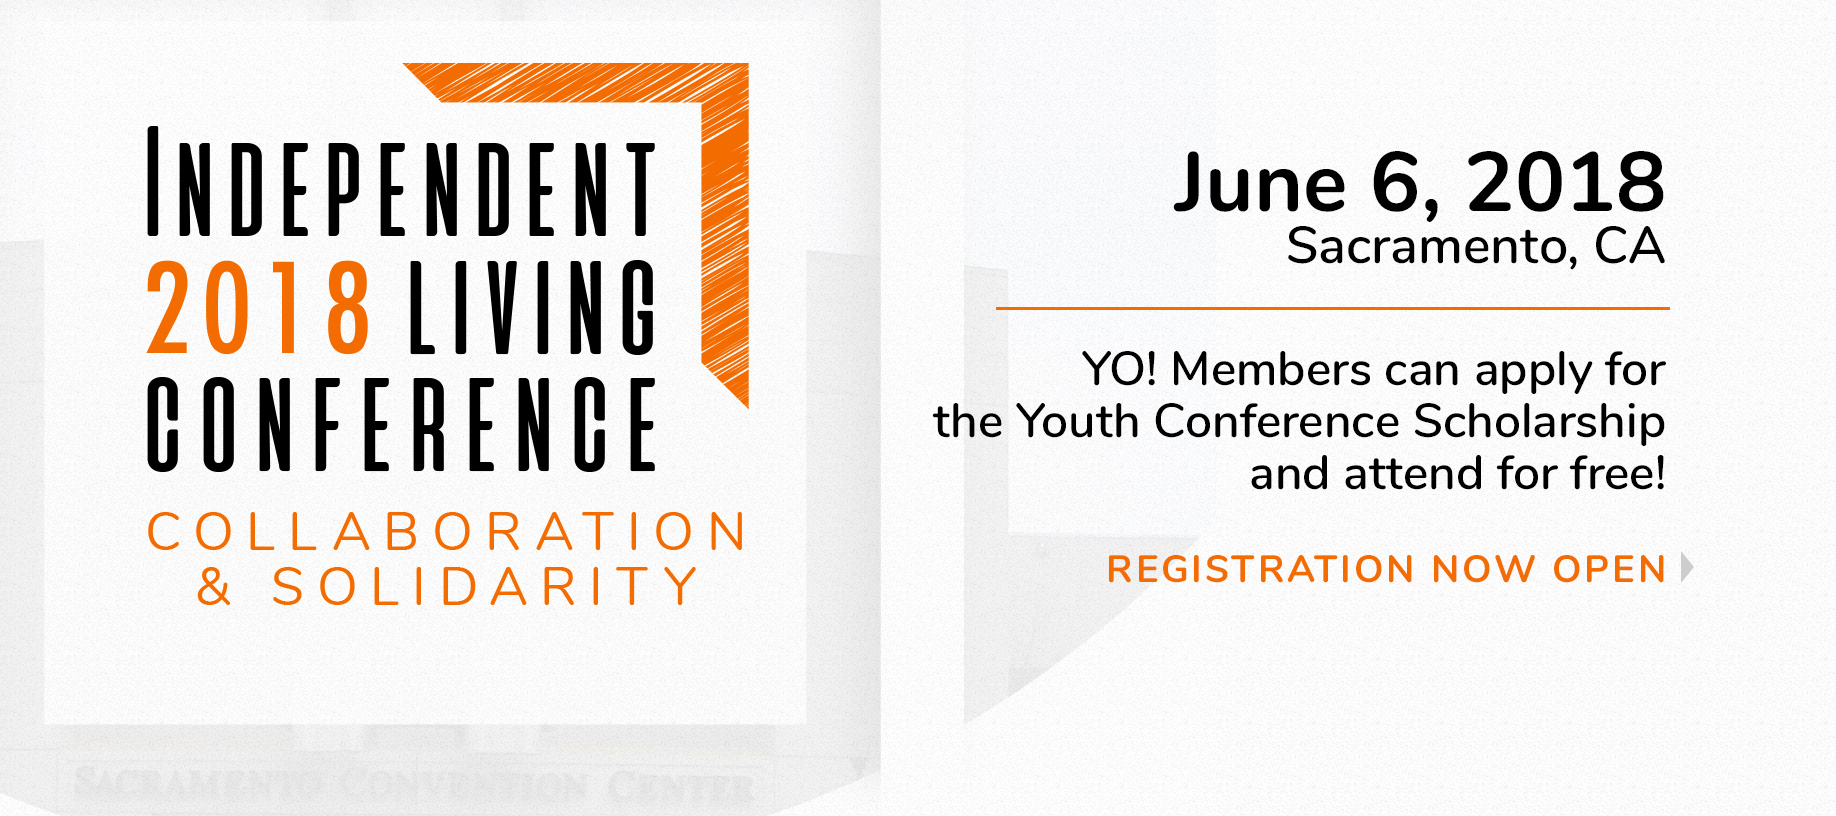 Banner of the 2018 Independent Living Conference: Collaboration & Solidarity. June 6, 2018 in Sacramento, CA. YO! Members can apply for the Youth Conference Scholarship and attend for free! Registration now open.